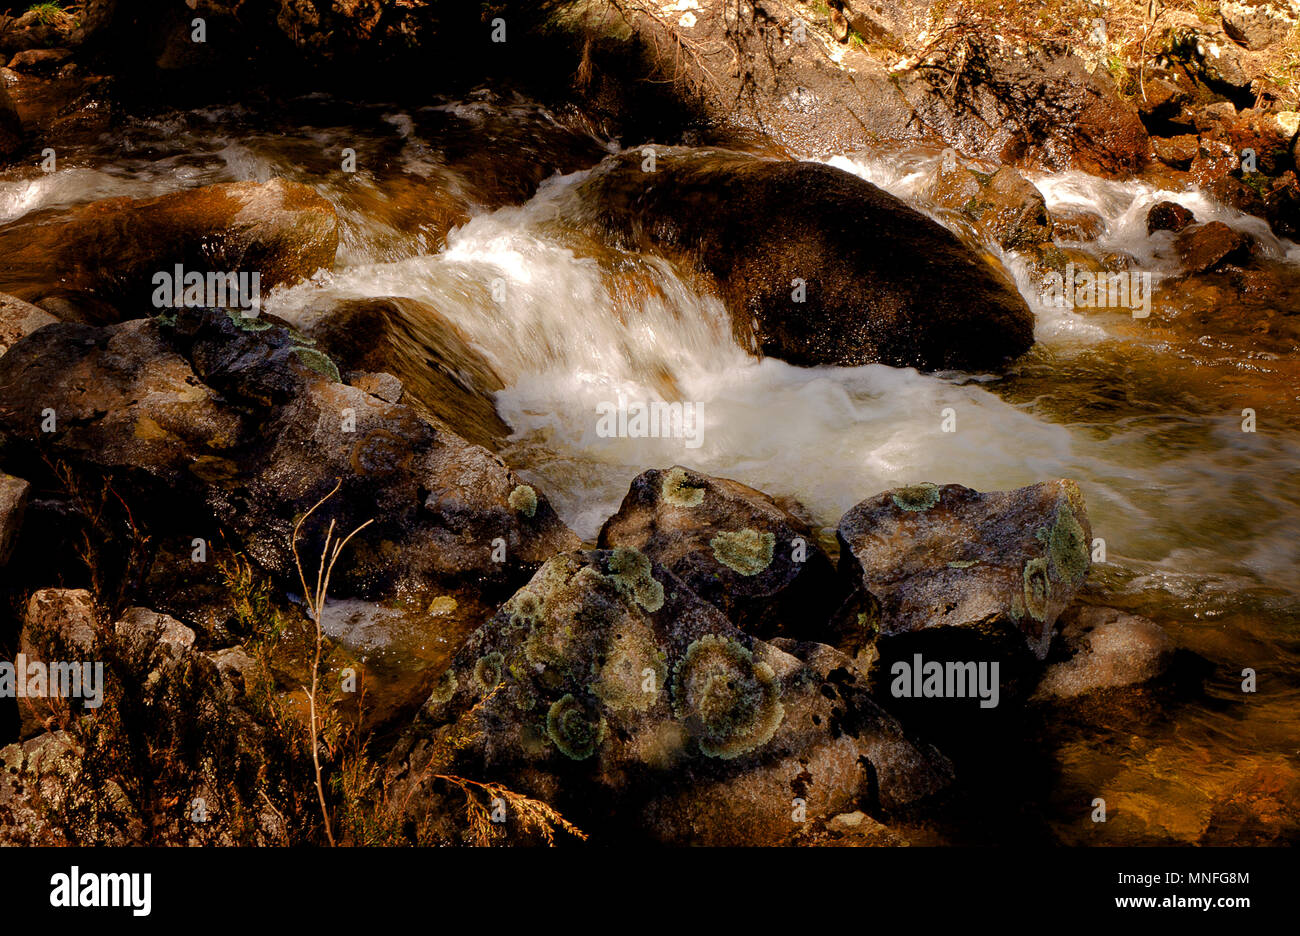 Mountain creek with water flowing swiftly between boulders. - Stock Image